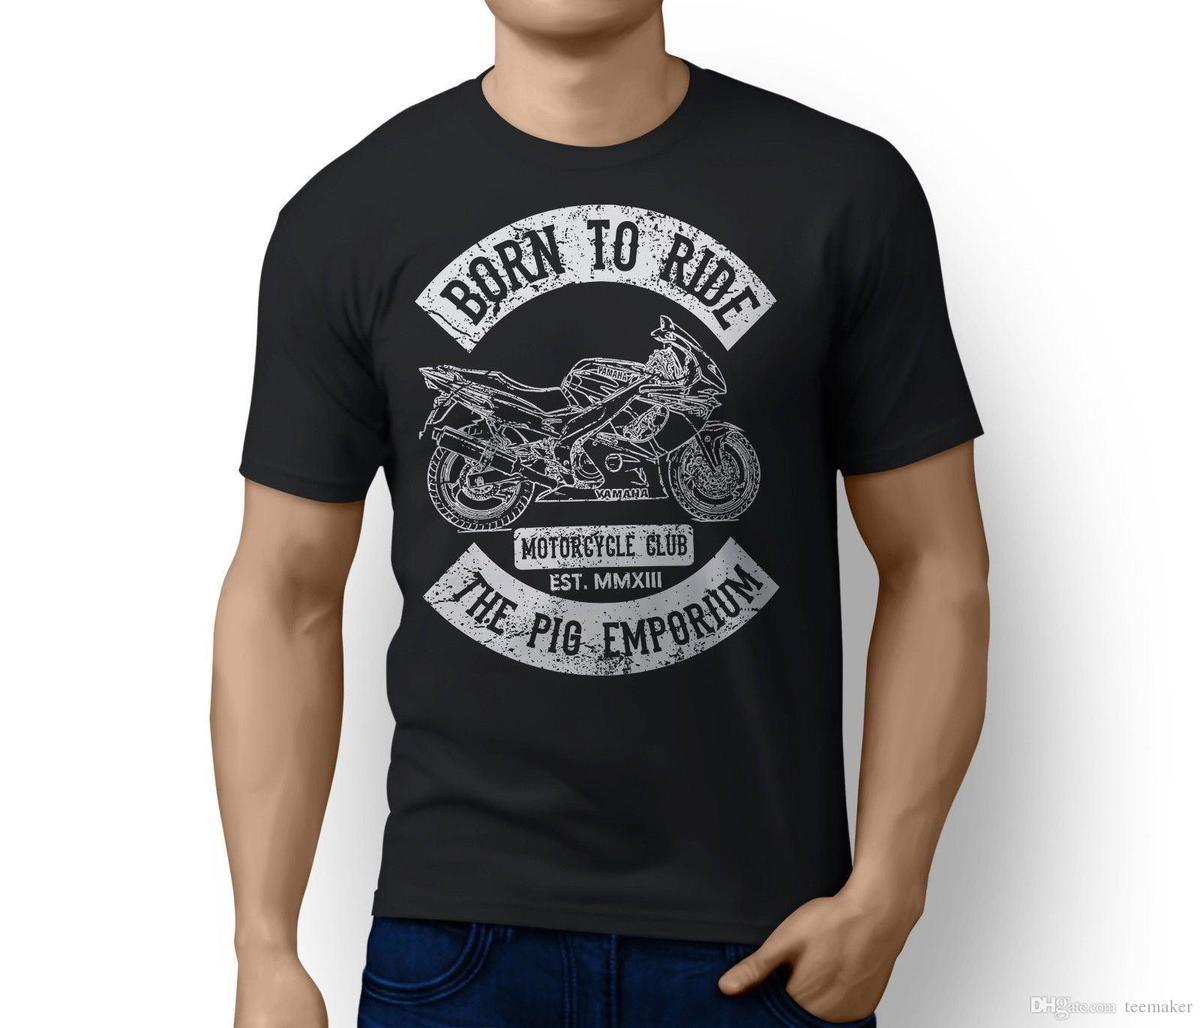 Rh Born To Ride Yamaha Yzf600R Thundercat Inspired Motorbike Art T-Shirt Casual Tallas grandes Camisetas estilo Hip Hop Tops Camiseta S-3XL